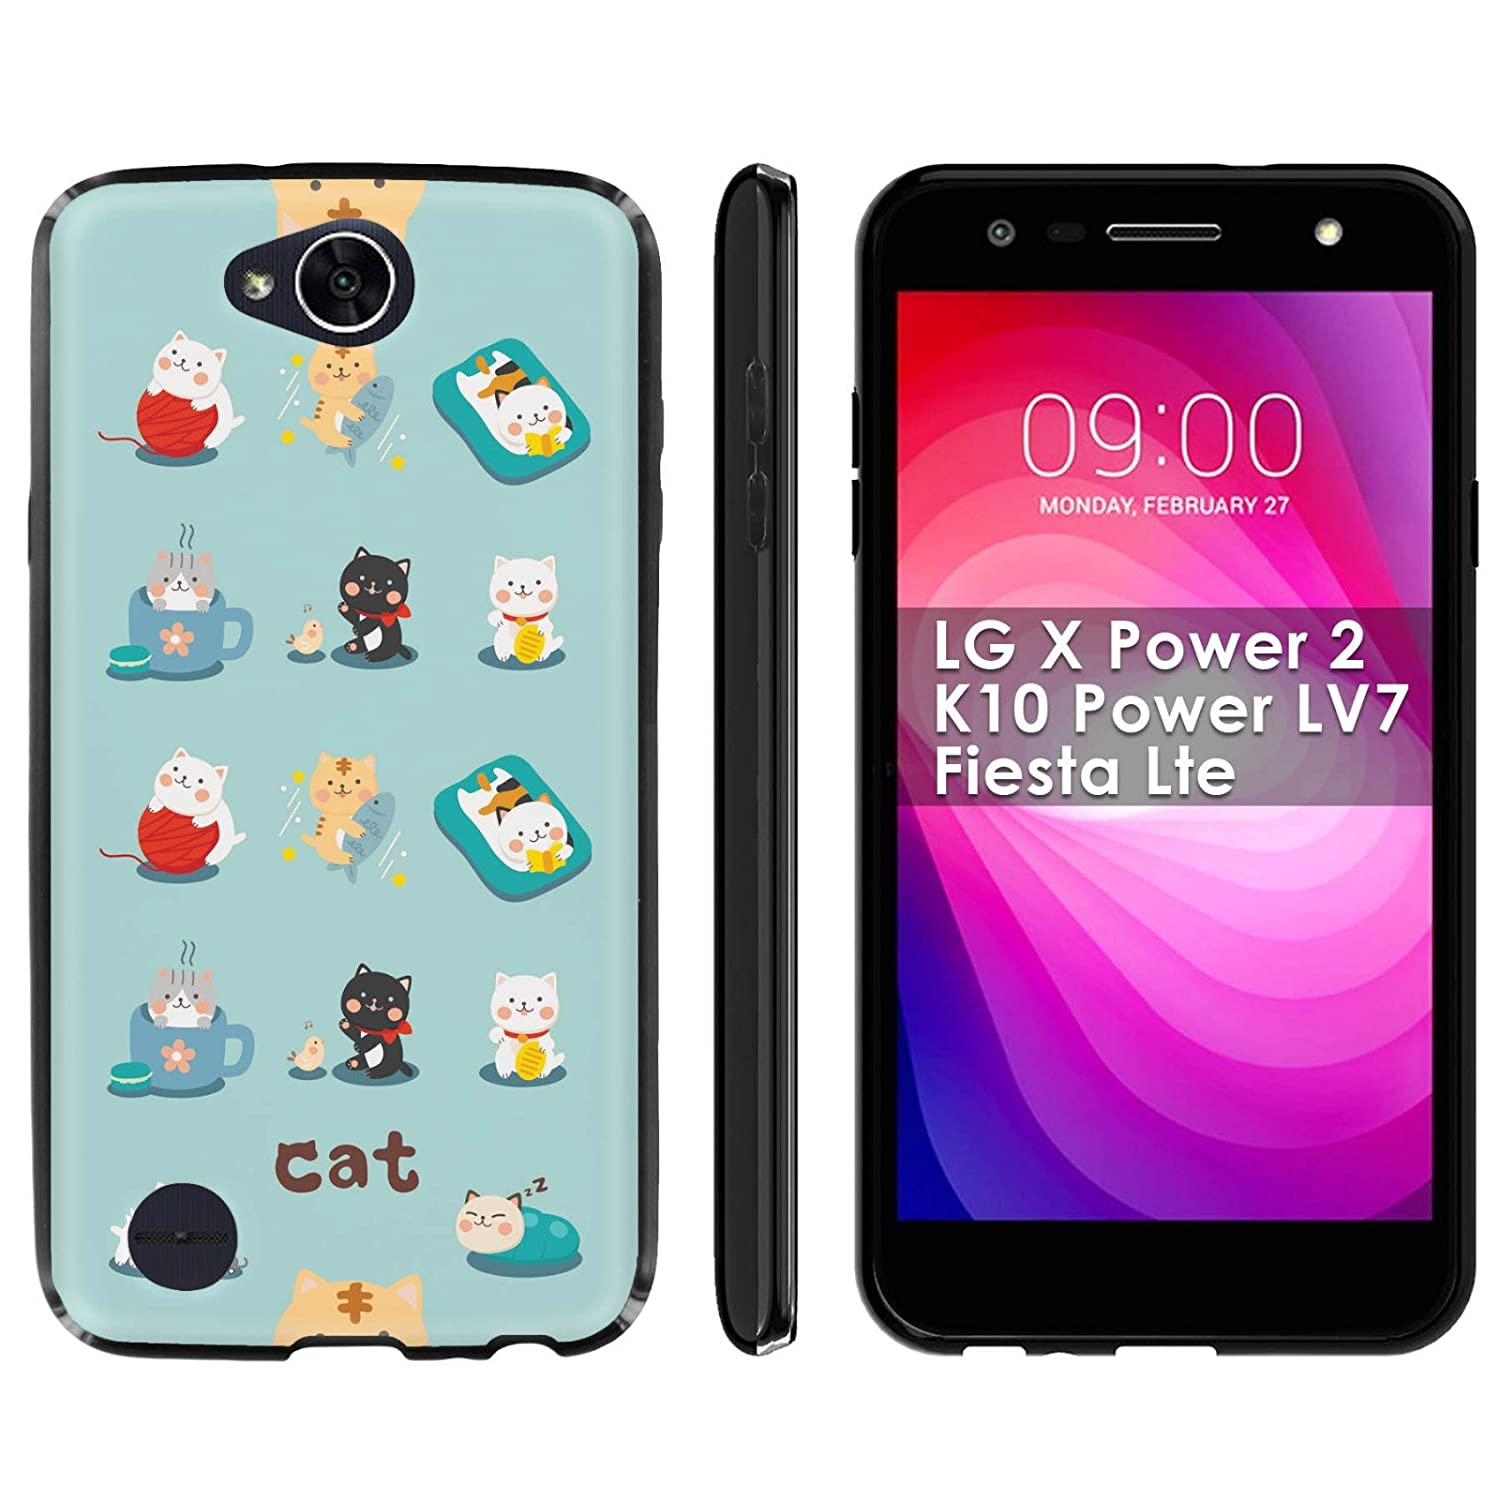 """LG X Charge/X Power 2/K10 Power LV7/Fiesta Lte Silicone Rubber Phone Cover [Case86] [Black] Gel Phone Case - [Cats] for LG X Charge/X Power 2/K10 Power LV7/Fiesta Lte [5.5"""" Screen]"""